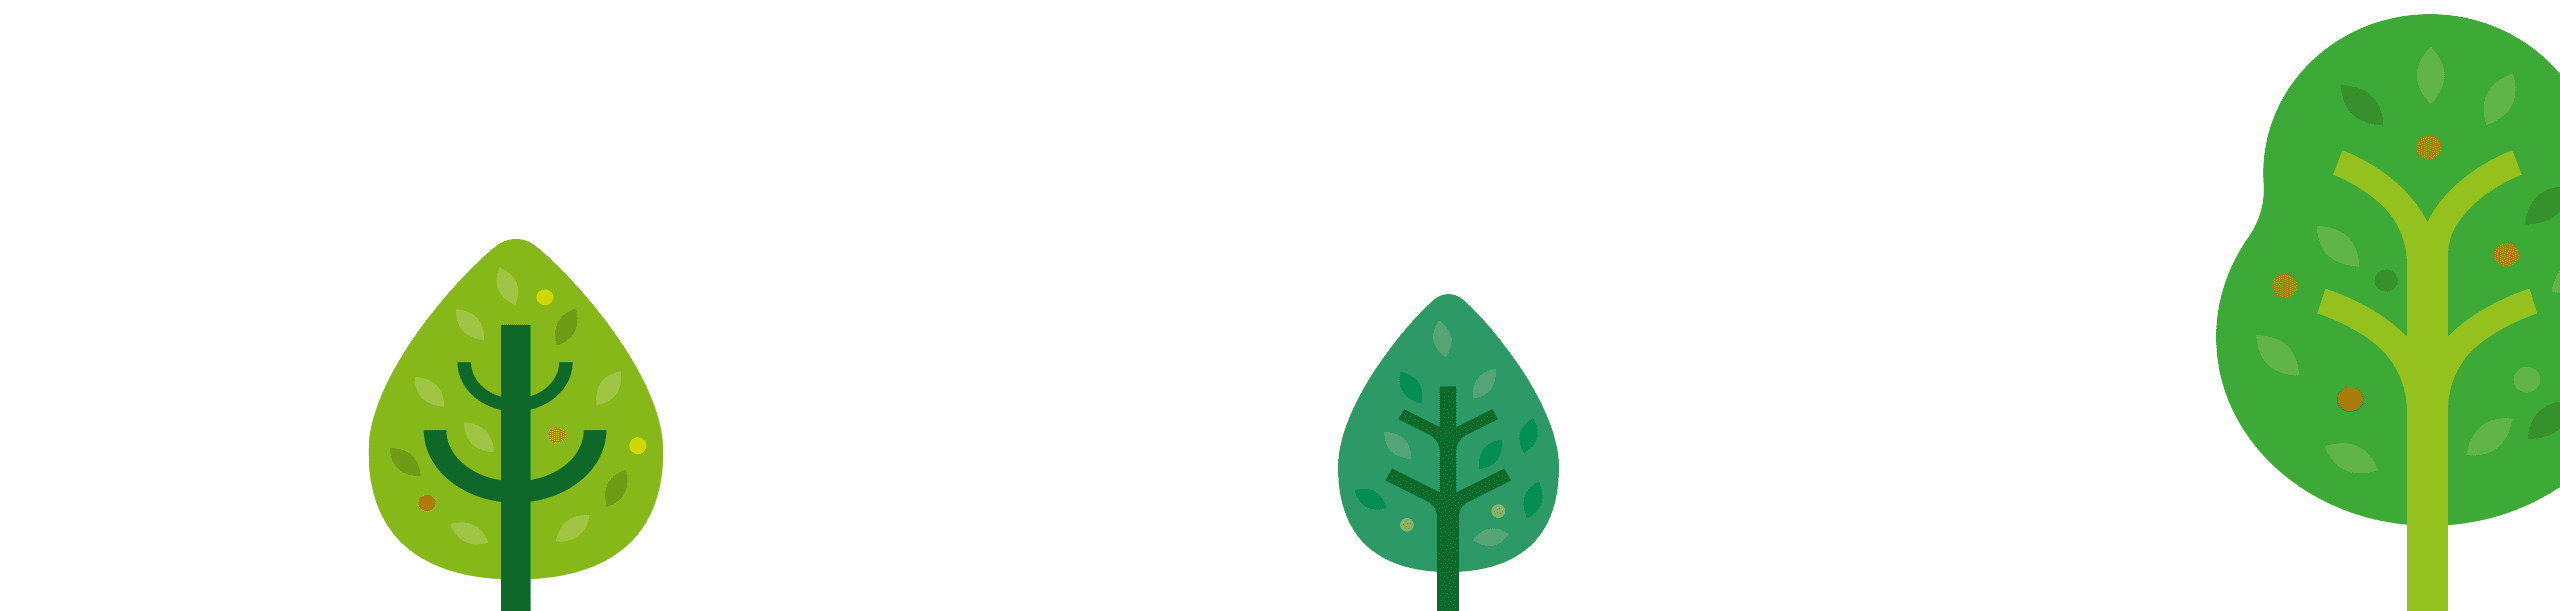 bottom header banner with trees